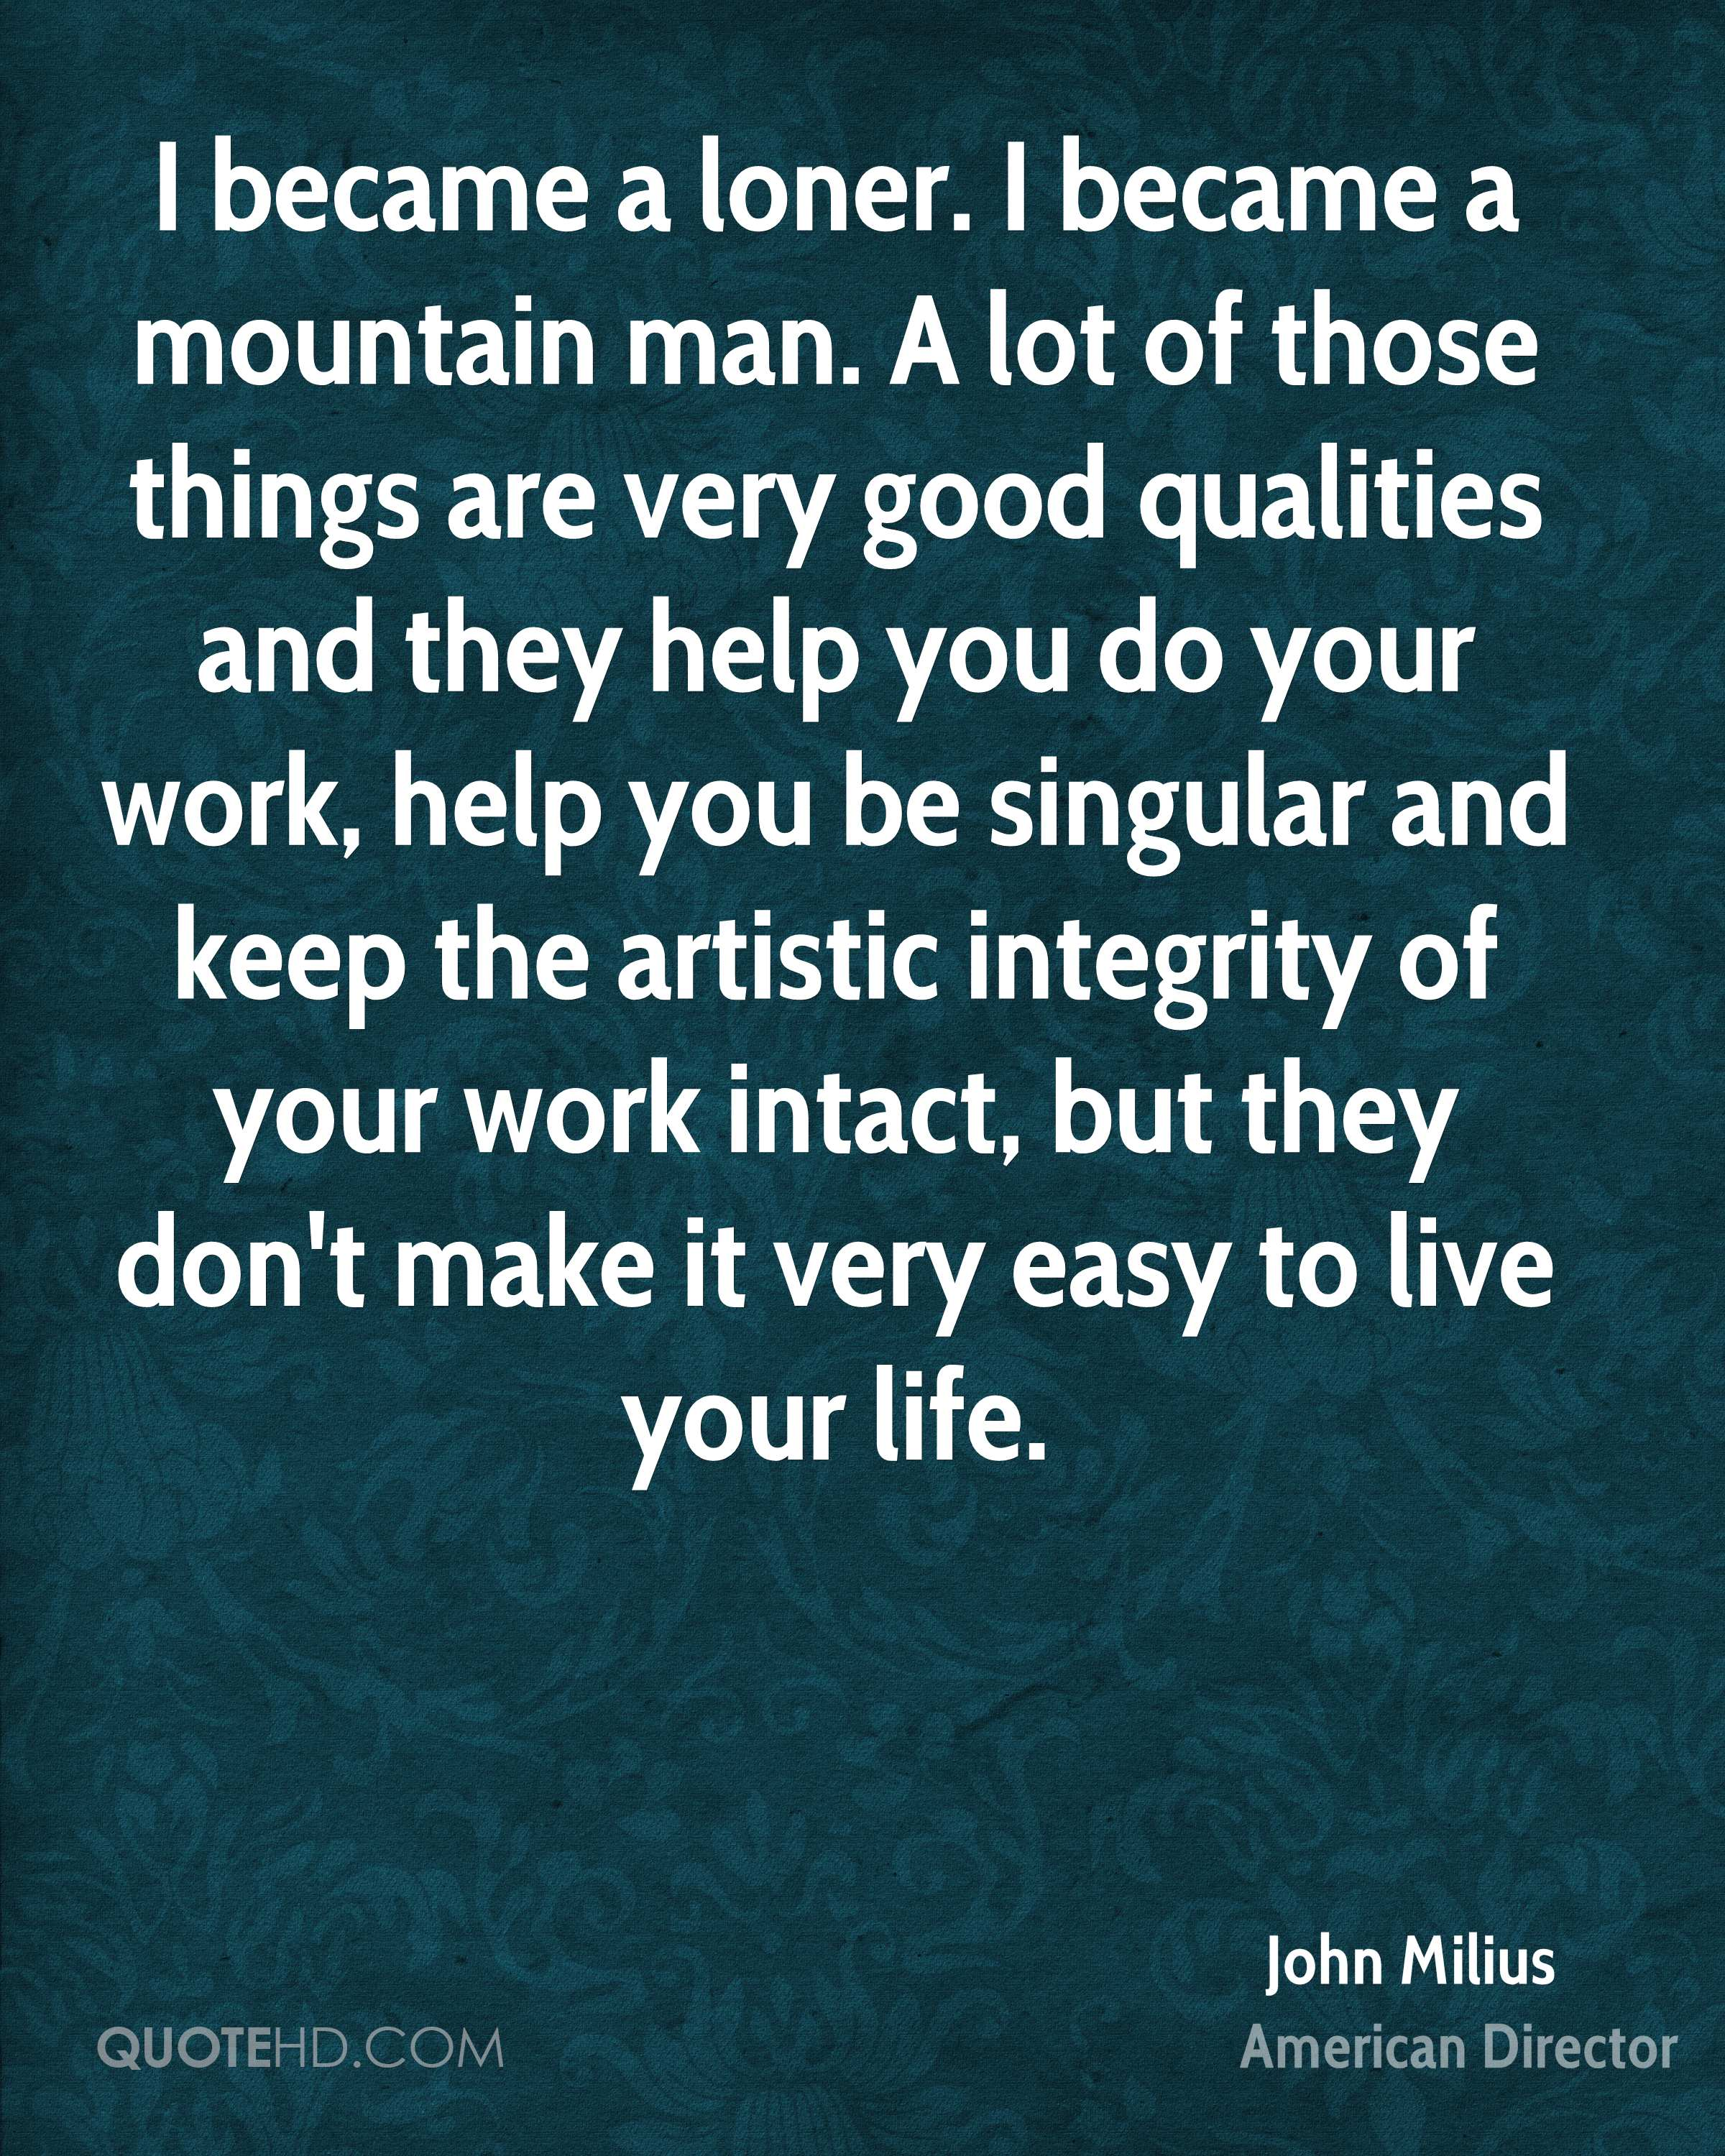 john milius life quotes quotehd i became a loner i became a mountain man a lot of those things